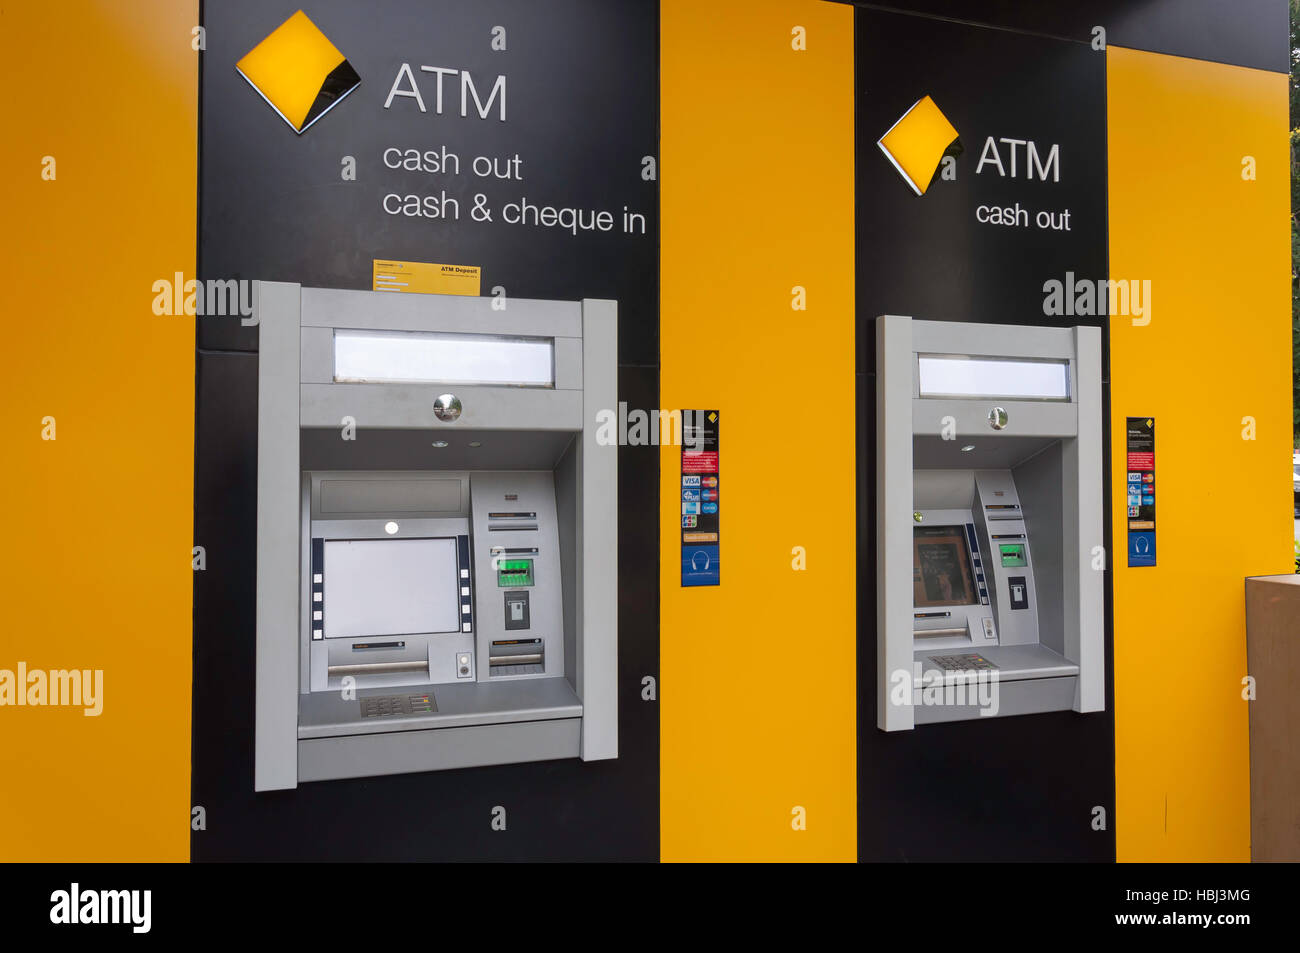 Commonwealth Bank ATM machines in Boundary Street, South Brisbane, Brisbane, Queensland, Australia - Stock Image